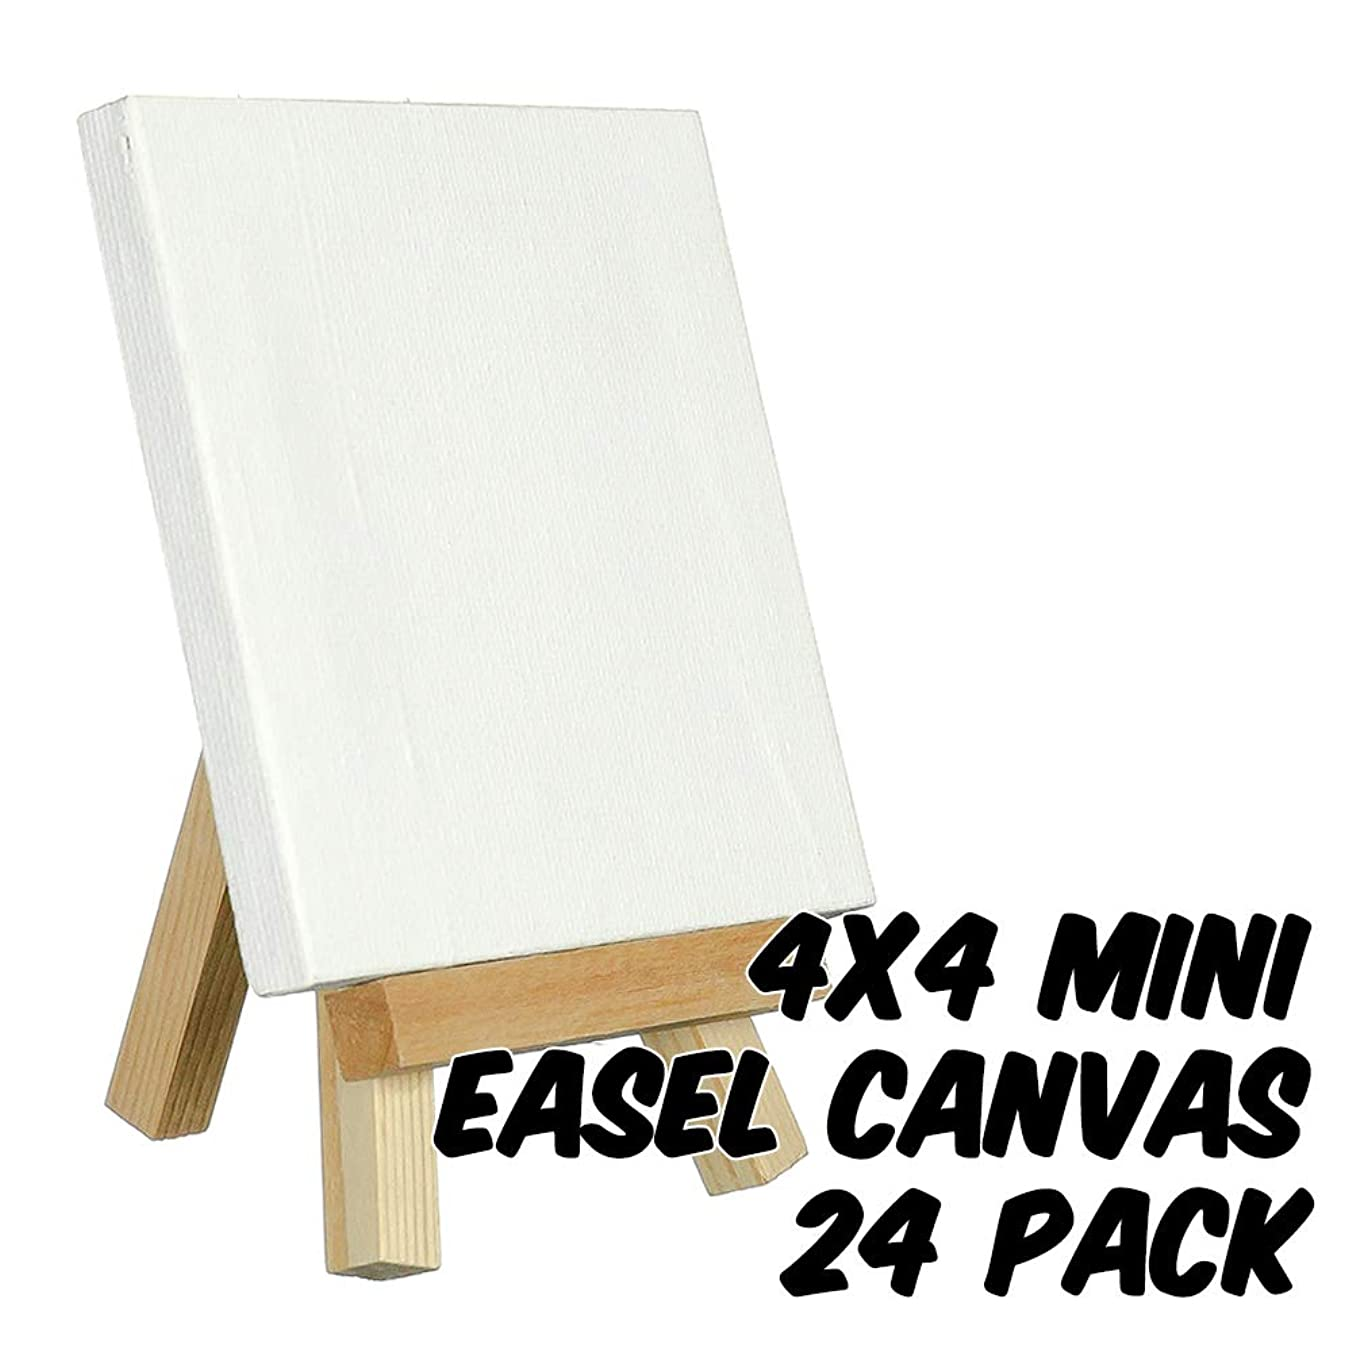 Markin Arts Craftvas Swedish Solid Pine Wood Acid/Discoloration Free 100% Grade A Cotton Medium Weight 10oz Triple Titanium Acrylic Gesso Primed Mini Stretched Art Canvas Easel Set 4x4